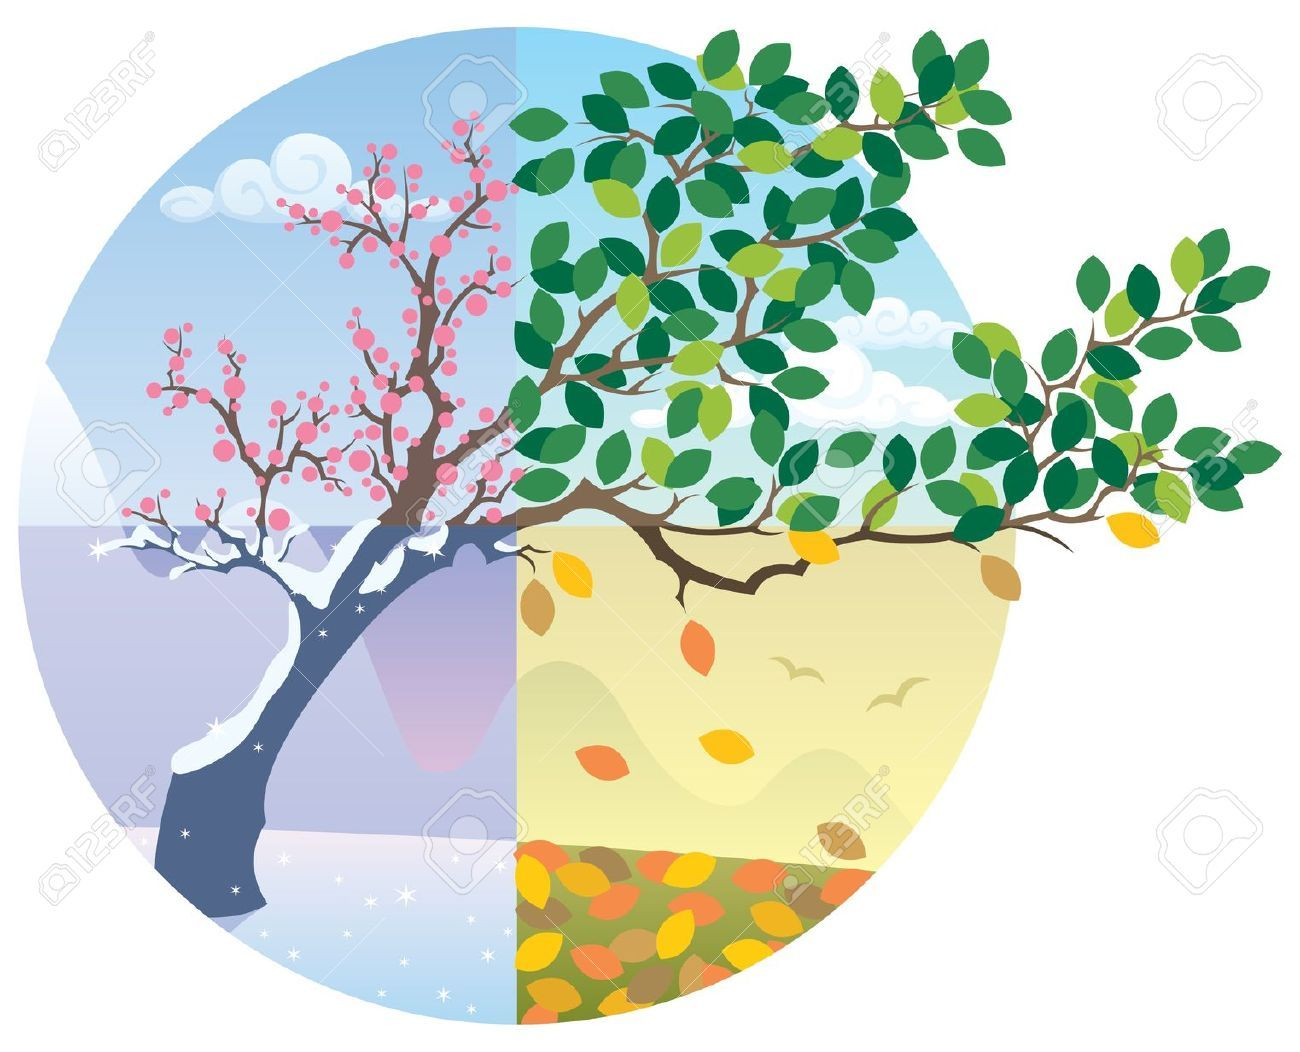 Four Seasons Clipart at GetDrawings.com.